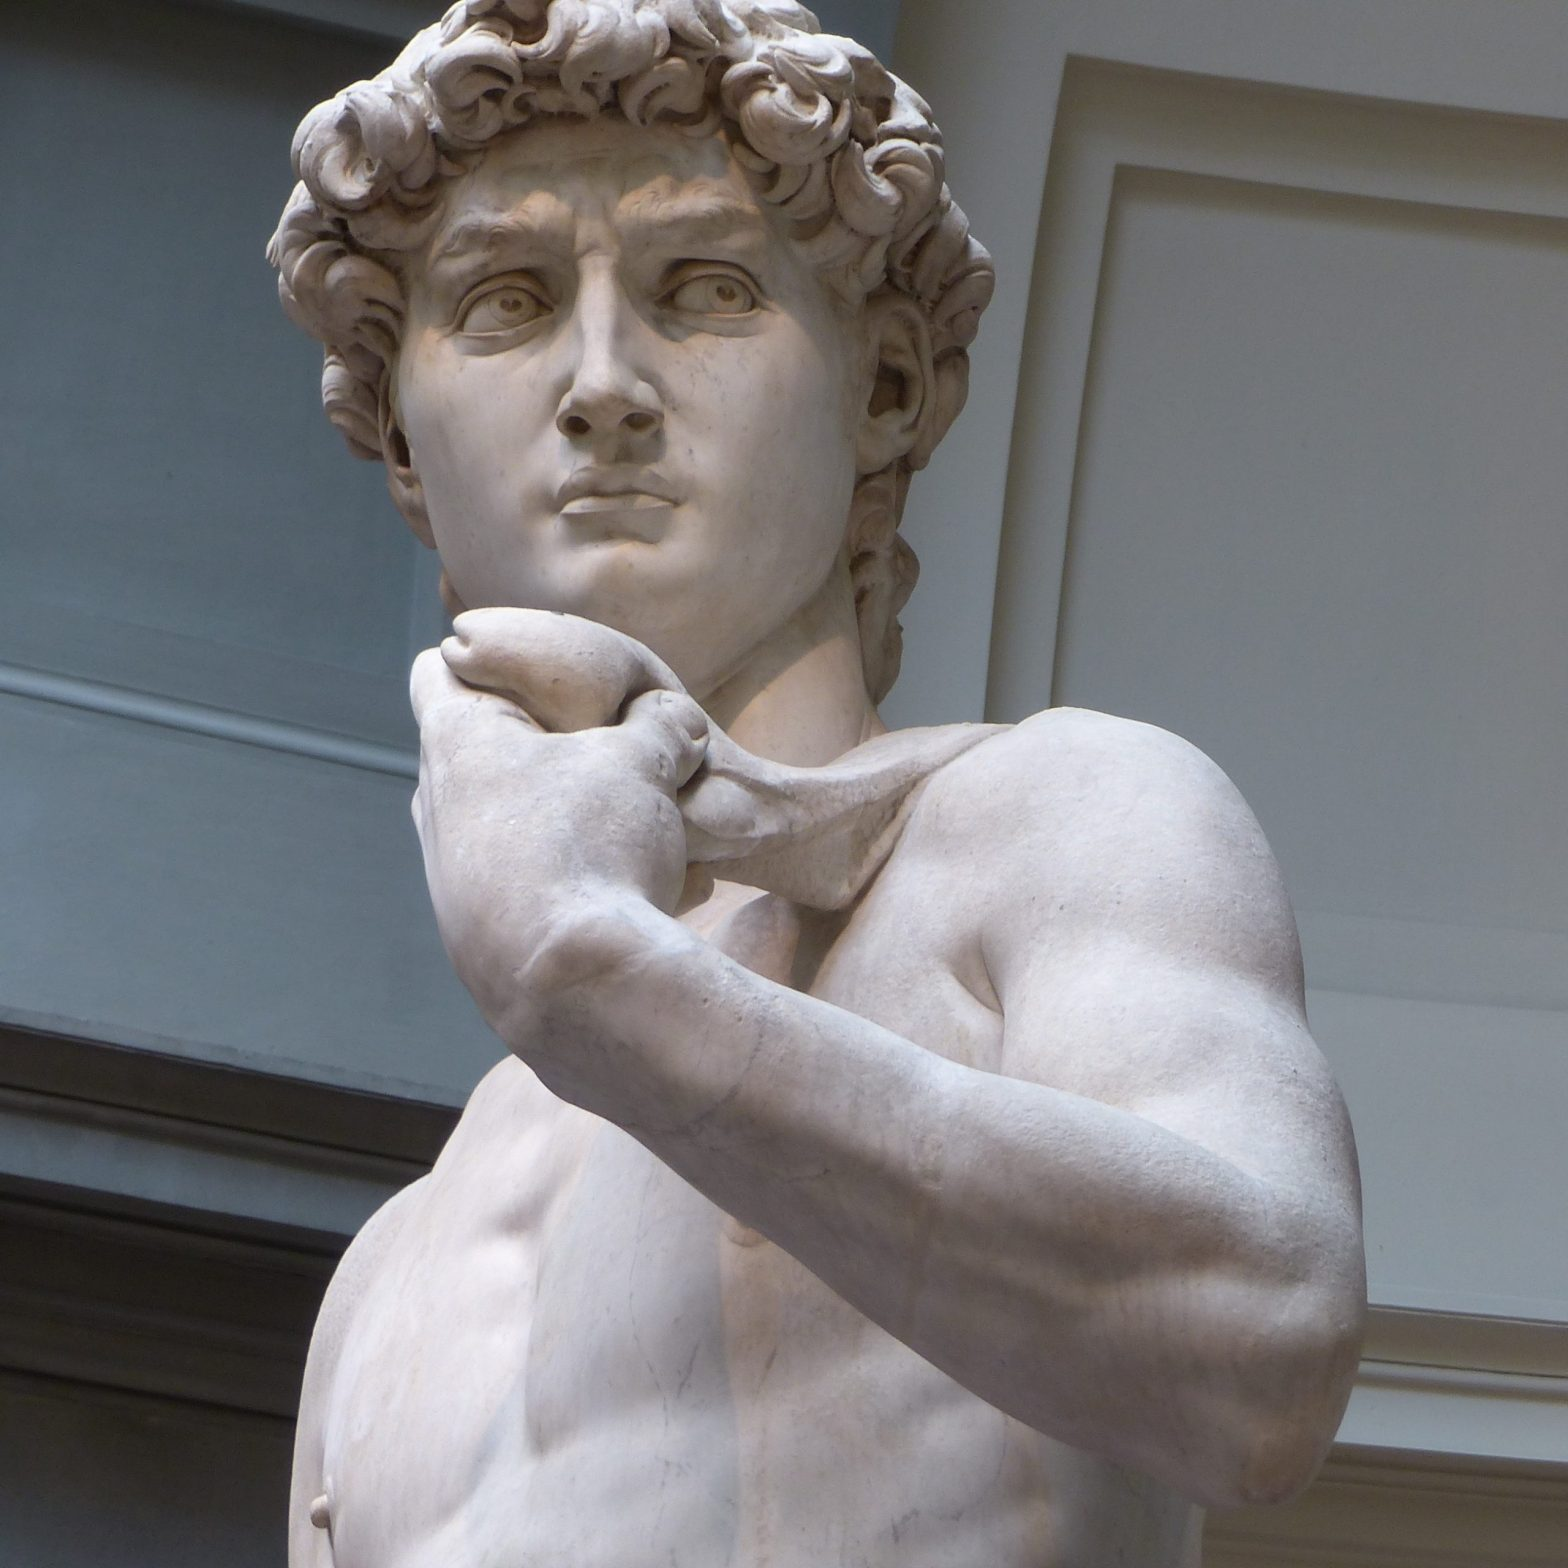 Statue of David as a symbol of perfectionism